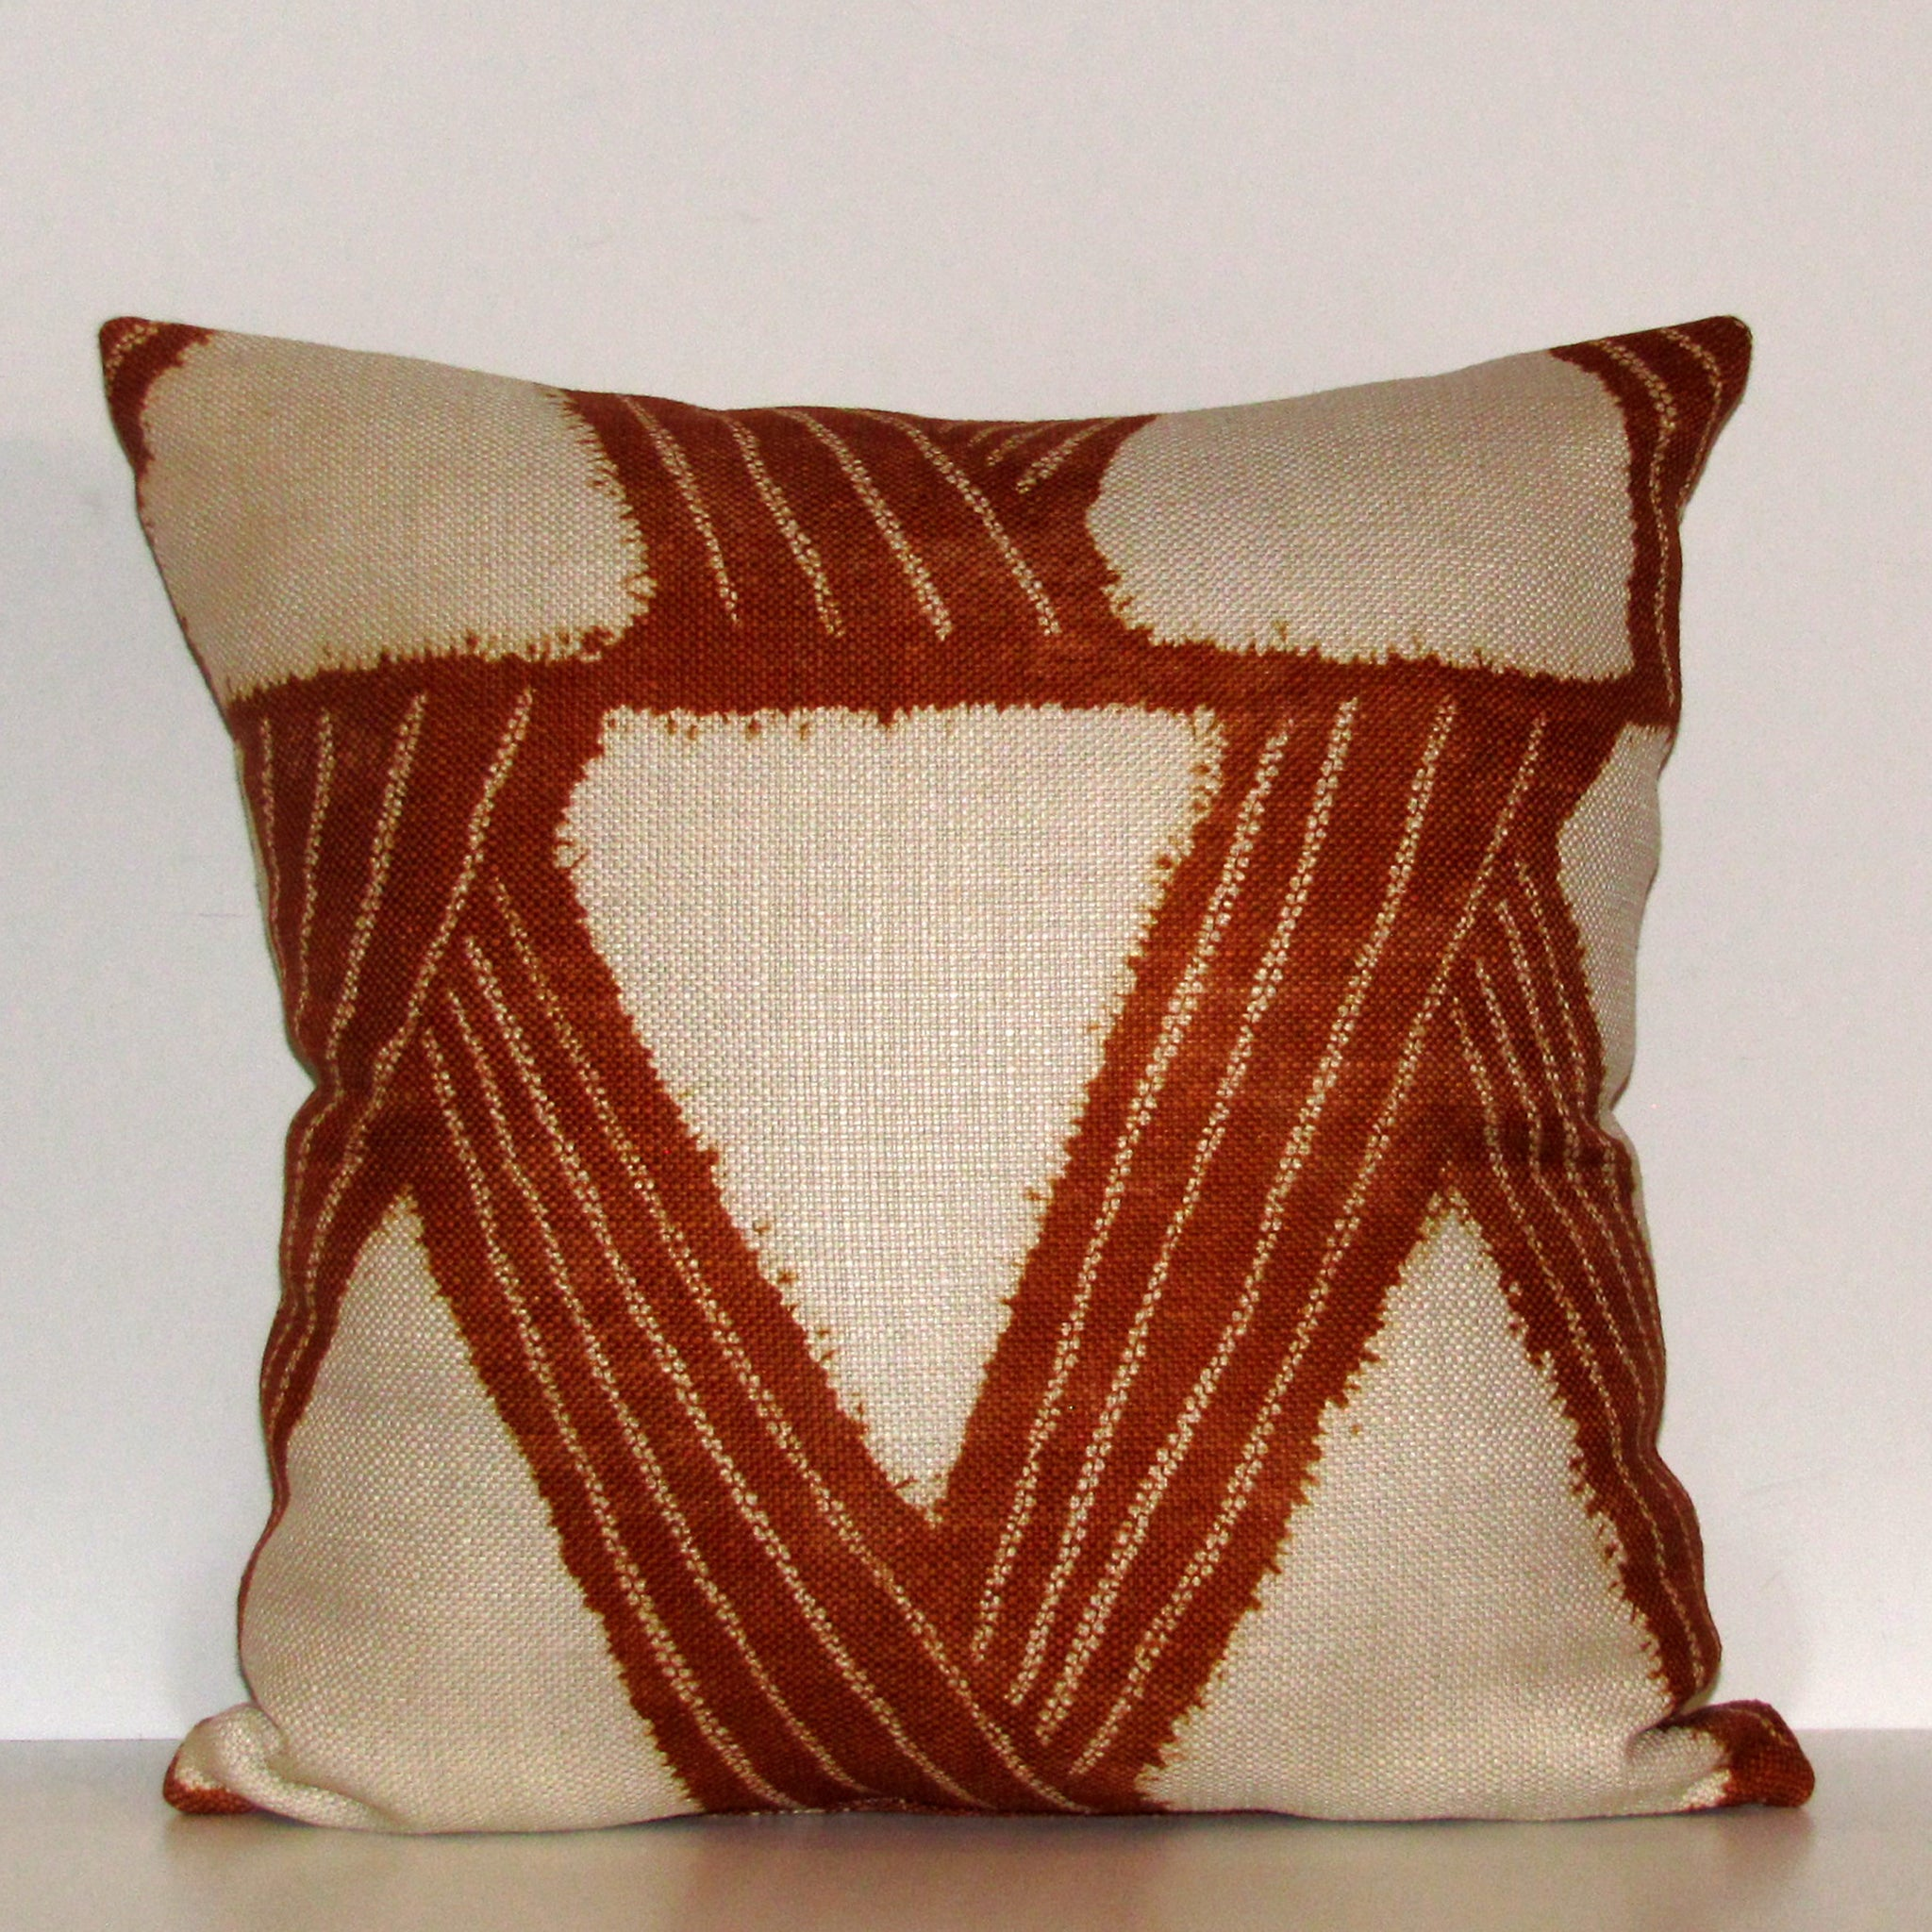 Kanoko cushion cover